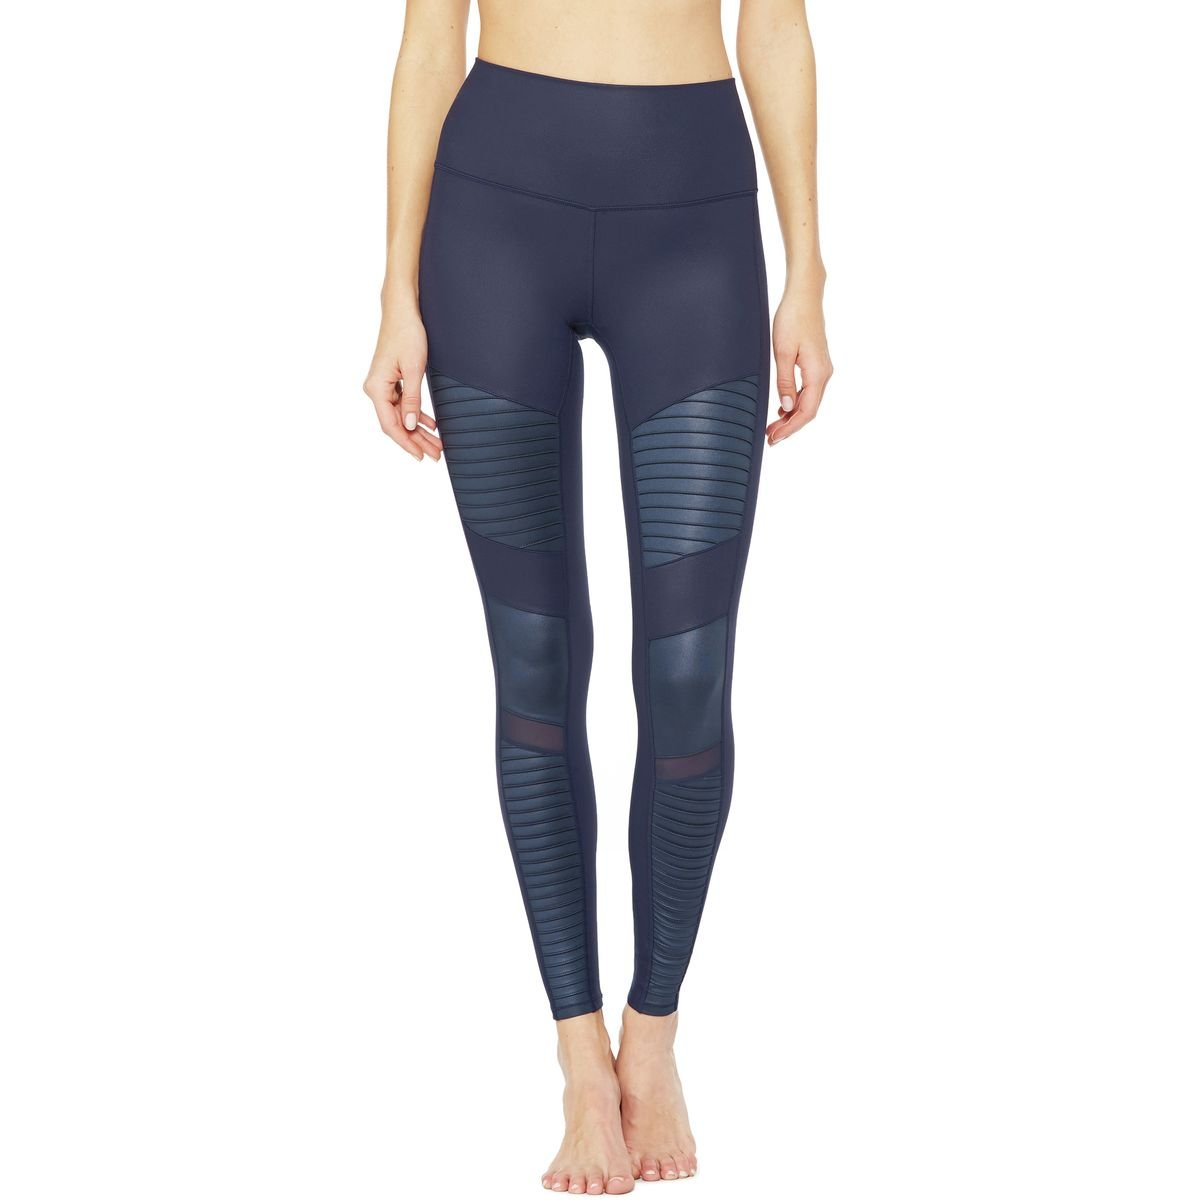 ALO High Waisted Moto Leggings Rich Navy/Rich Navy Glossy 1 SM